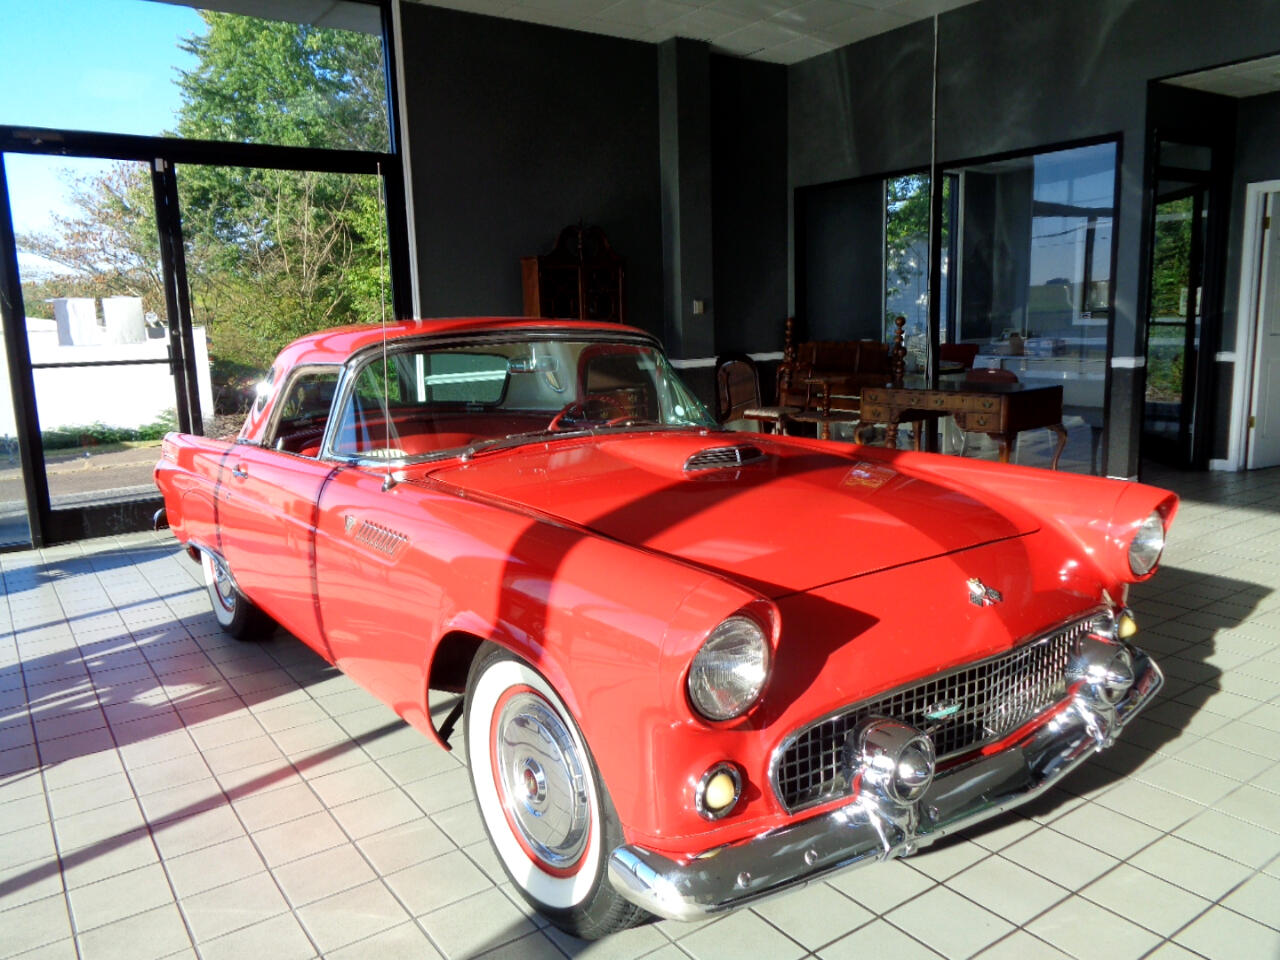 Ford Thunderbird Deluxe with removable top 1956